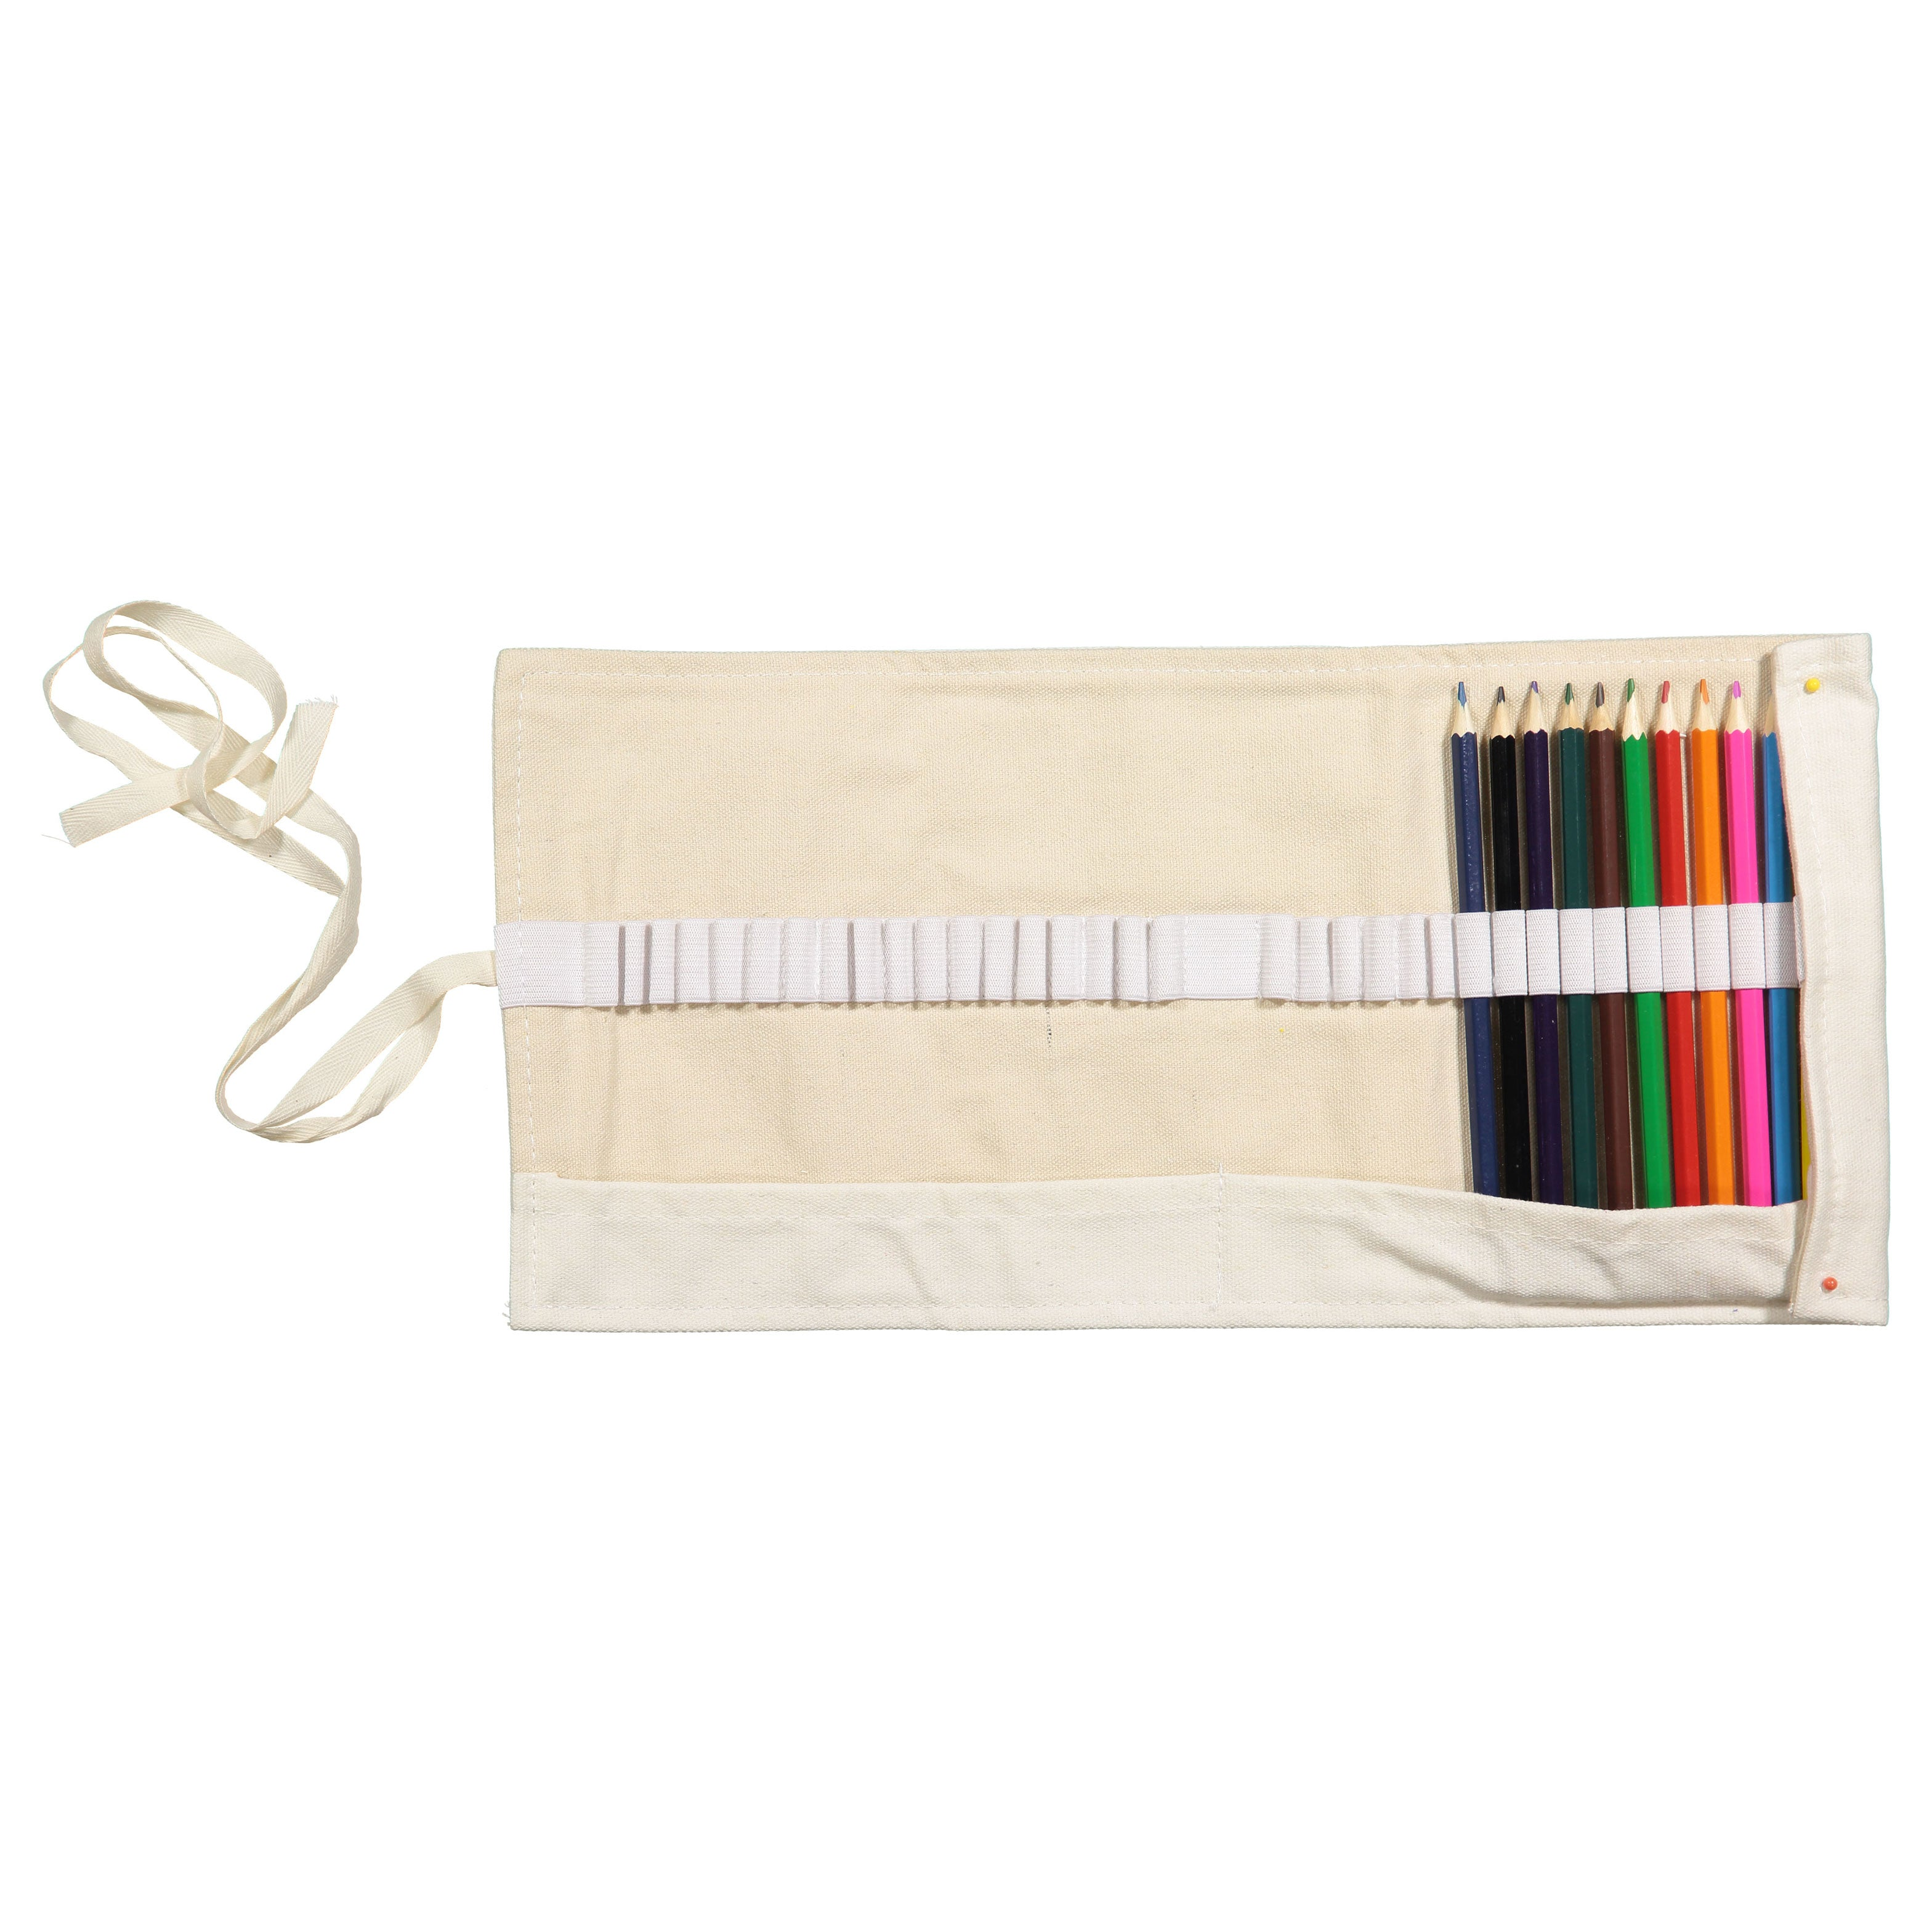 LADIDA10 Anniversary Pencil Case